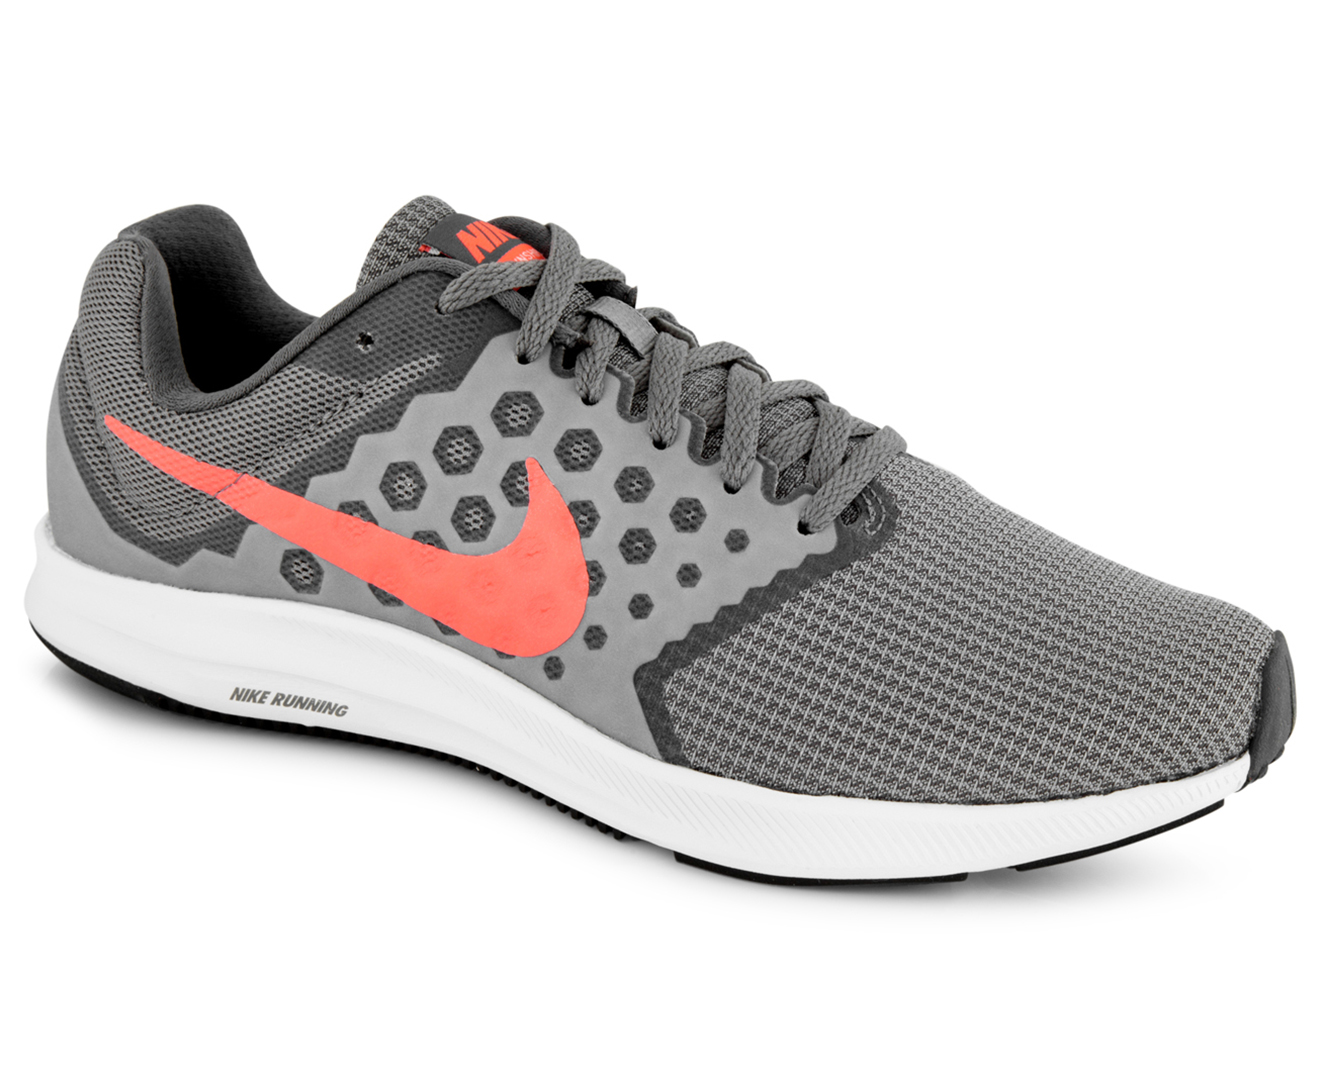 09aab24f193 Nike Women s Downshifter 7 Shoe - Cool Grey Lava Glow Dark Grey ...